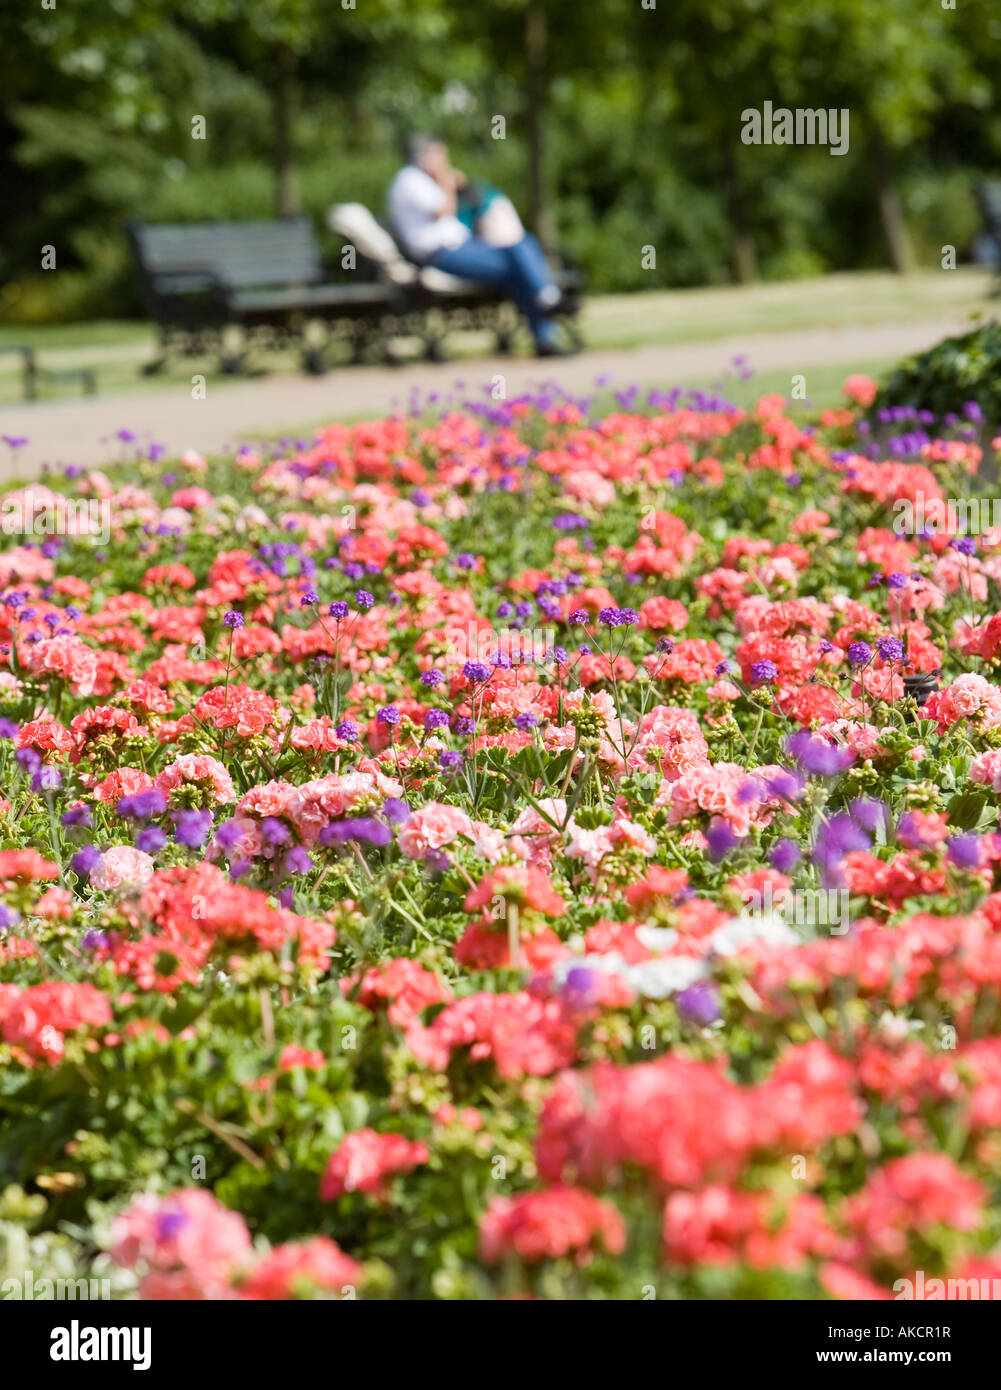 A colourful flower bed with a park bench in the background ... for Flower Park Background  150ifm